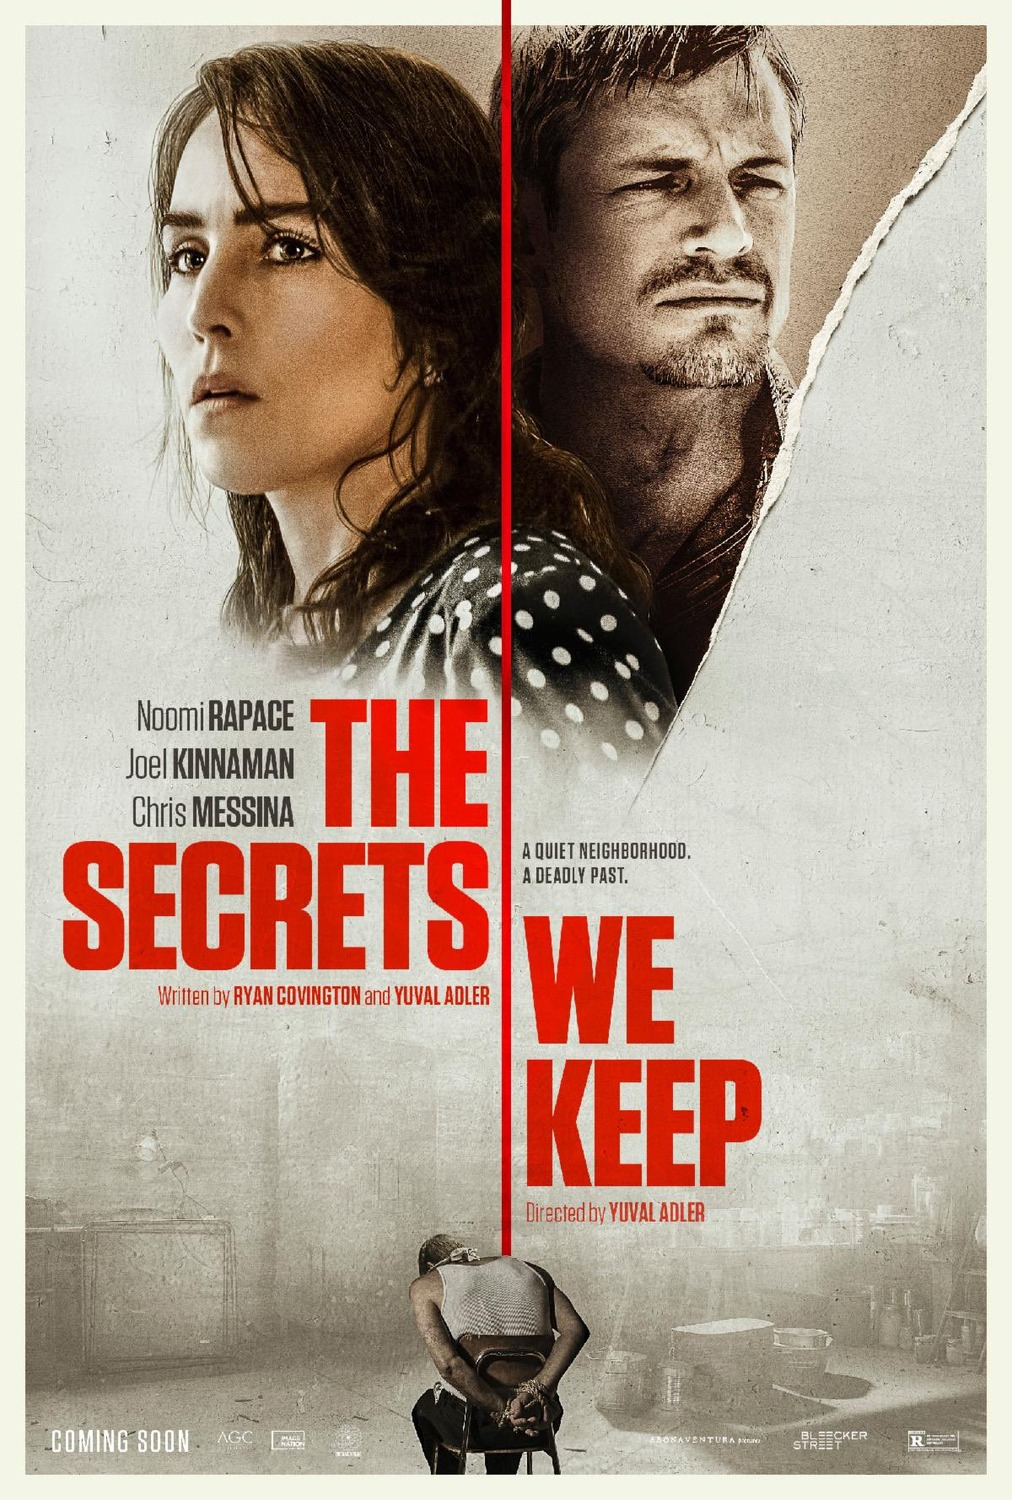 The Secrets We Keep (2020) Tamil Dubbed (Voice Over) & English [Dual Audio] BDRip 720p [1XBET]